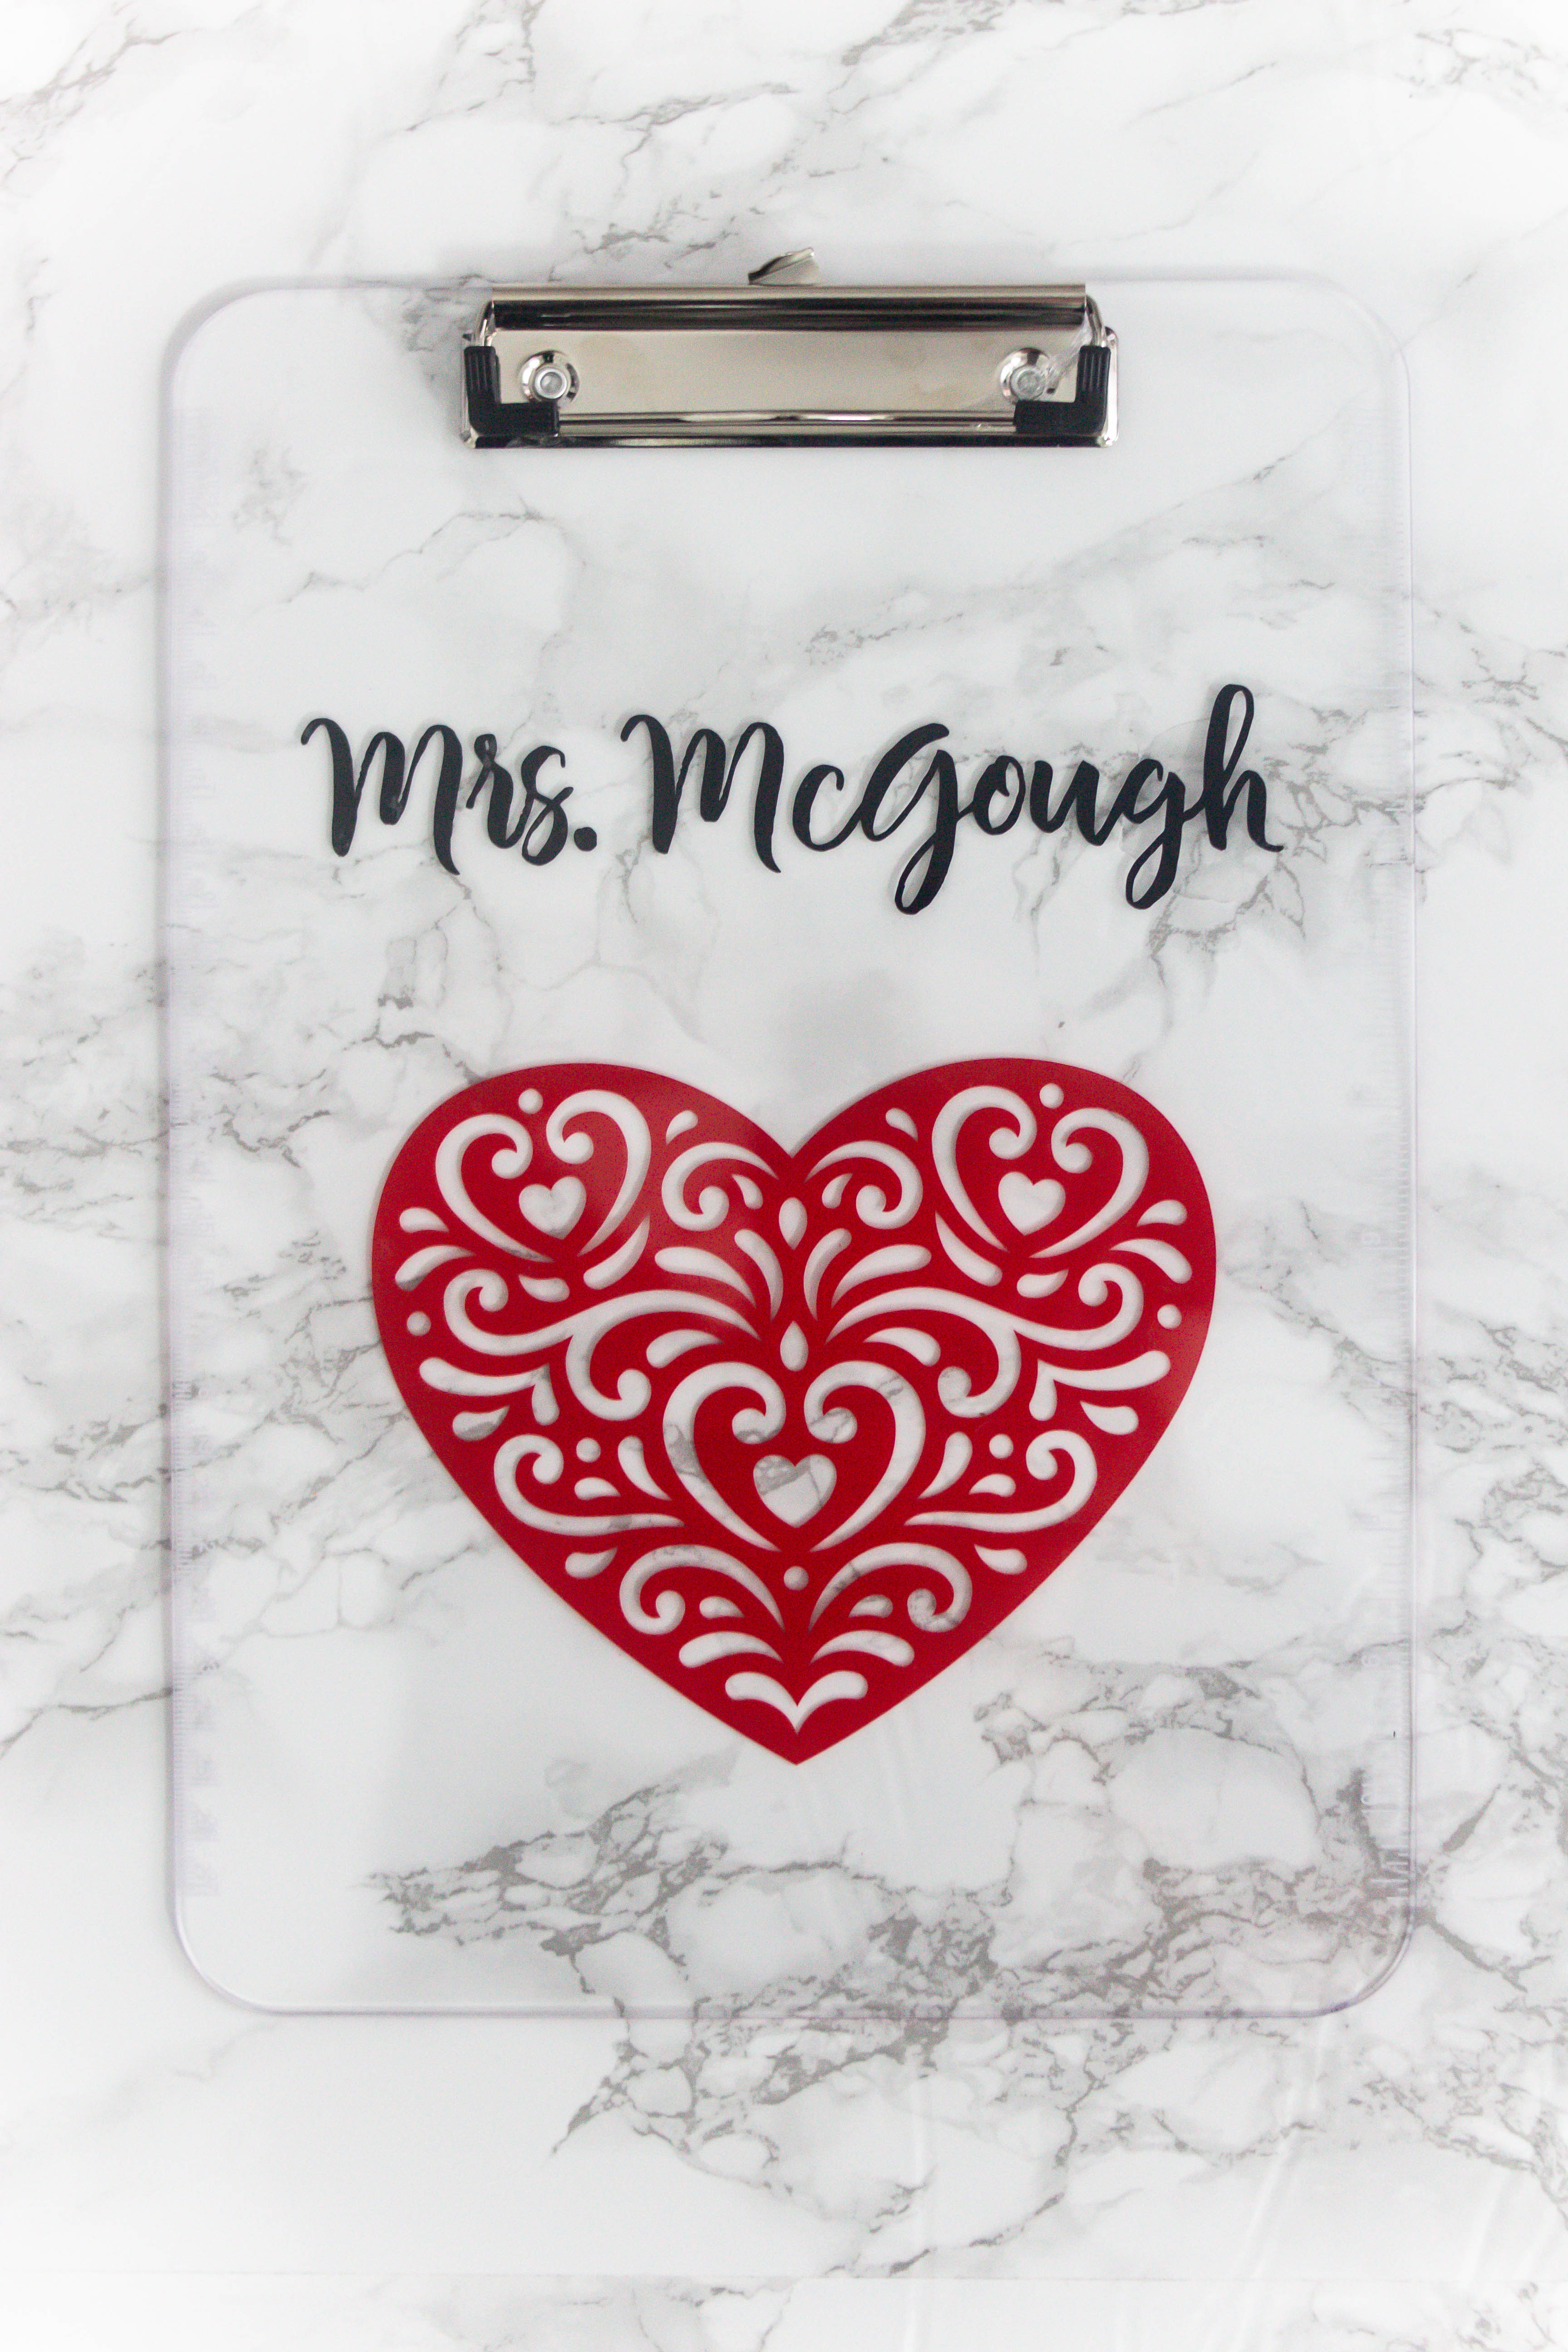 marbled background with diy personalized clipboard with heart image and personalized name on top